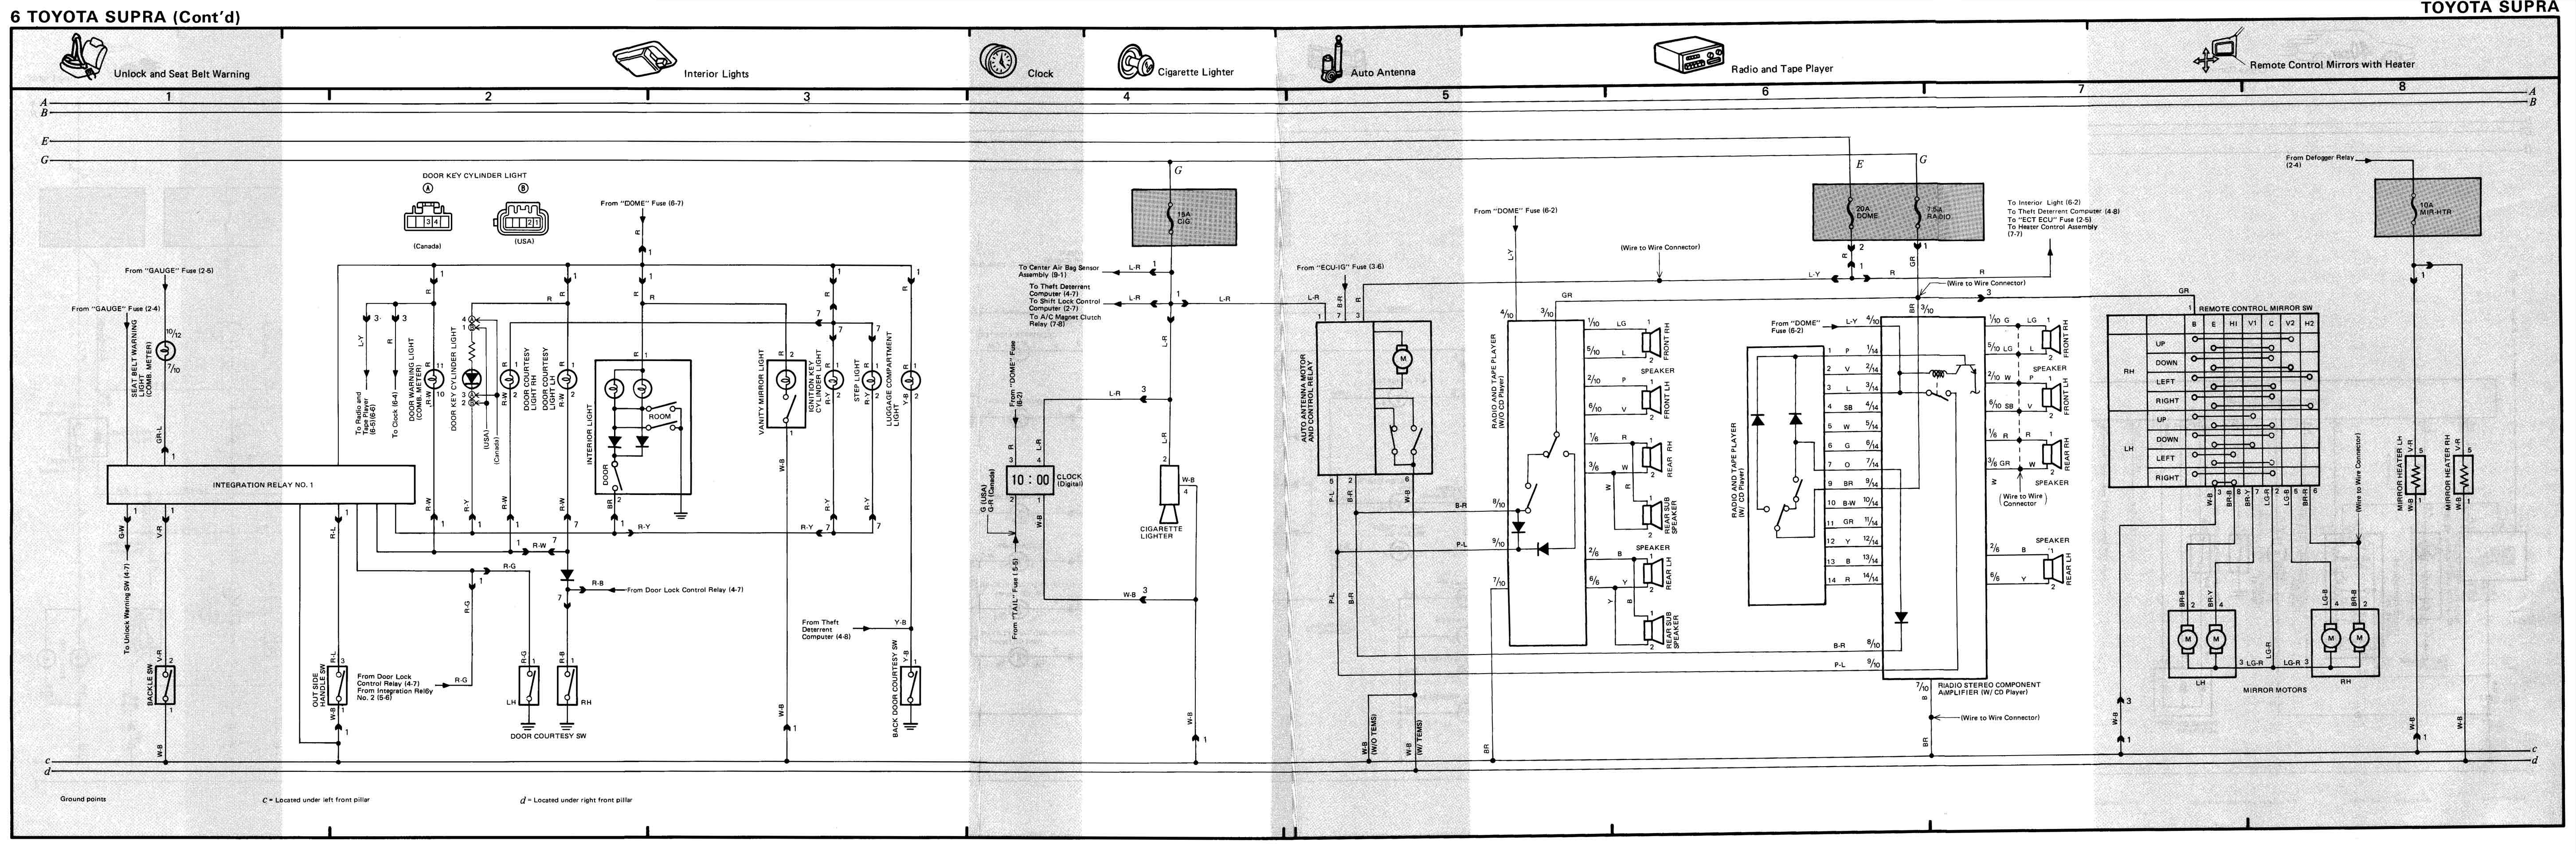 Daihatsu Fujitsu Ten Car Audio Wiring Diagram Zc 3827] toyota Echo Wiring Harness Wiring Diagram Wiring Of Daihatsu Fujitsu Ten Car Audio Wiring Diagram